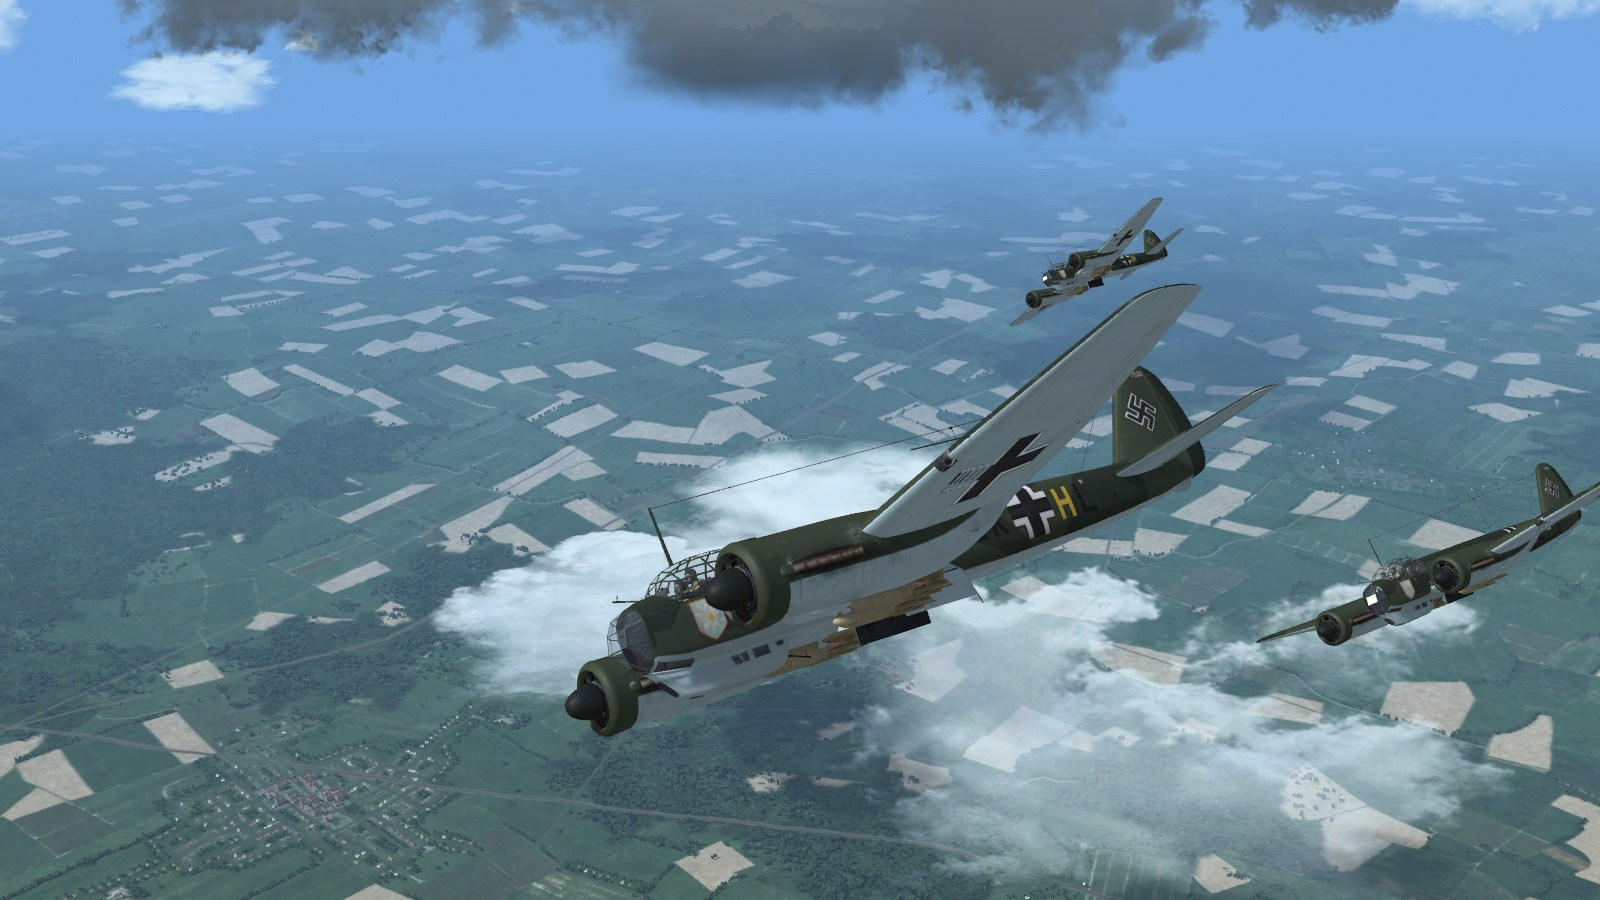 Wings over the Reich - Edelweiss Geschwader Junkers 88s